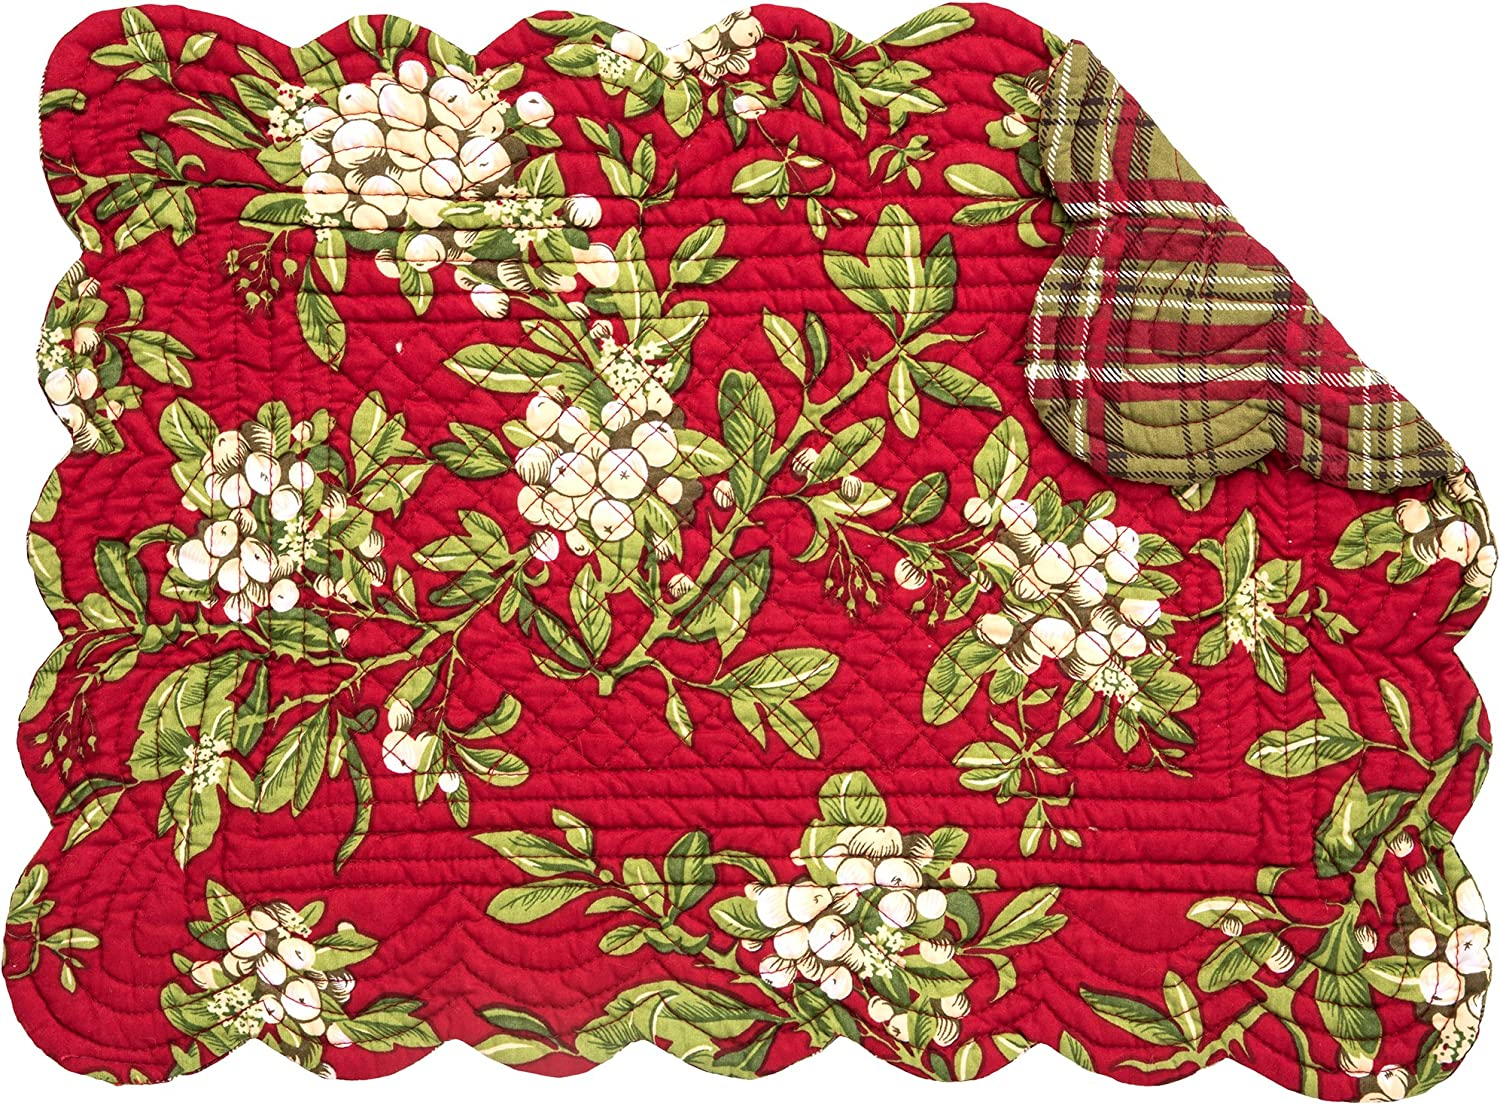 C&F Home Mistletoe Leaves Red Christmas Holiday Quilted Single Rectangular Cotton Quilted Placemat Rectangular Placemat Red